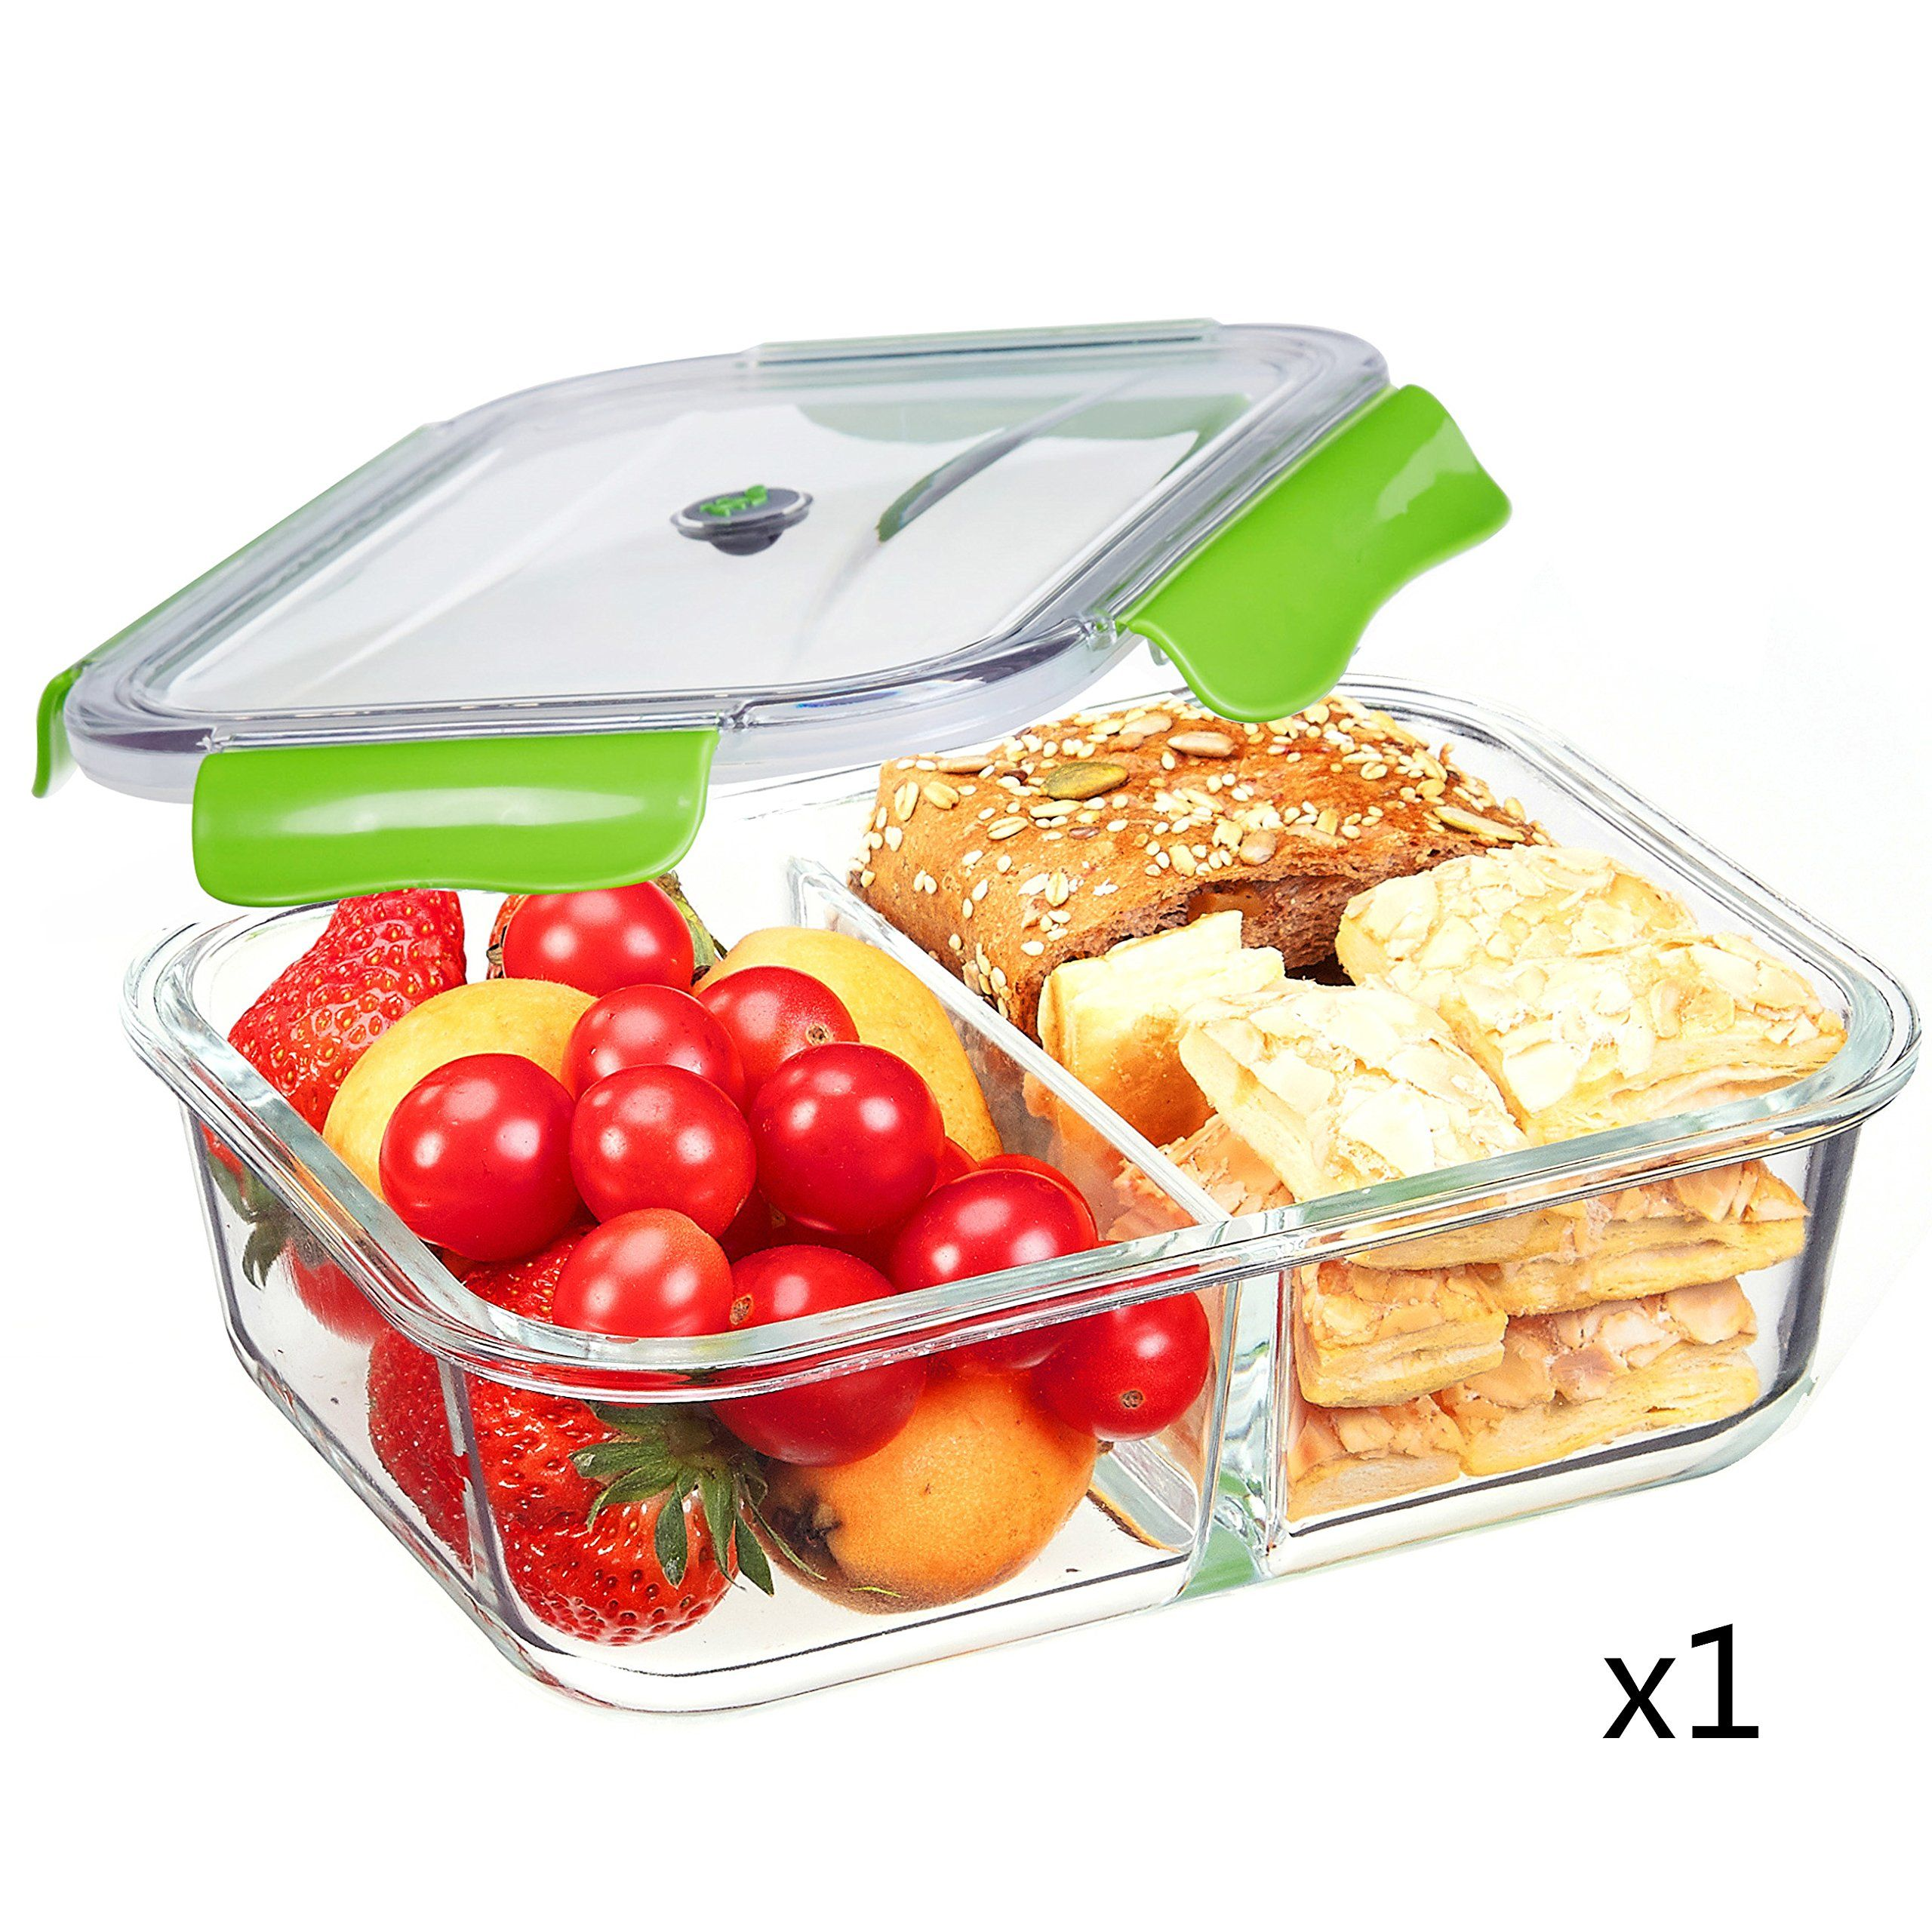 Seleware Food Containers Glass Microwaveable With Dividers Lids